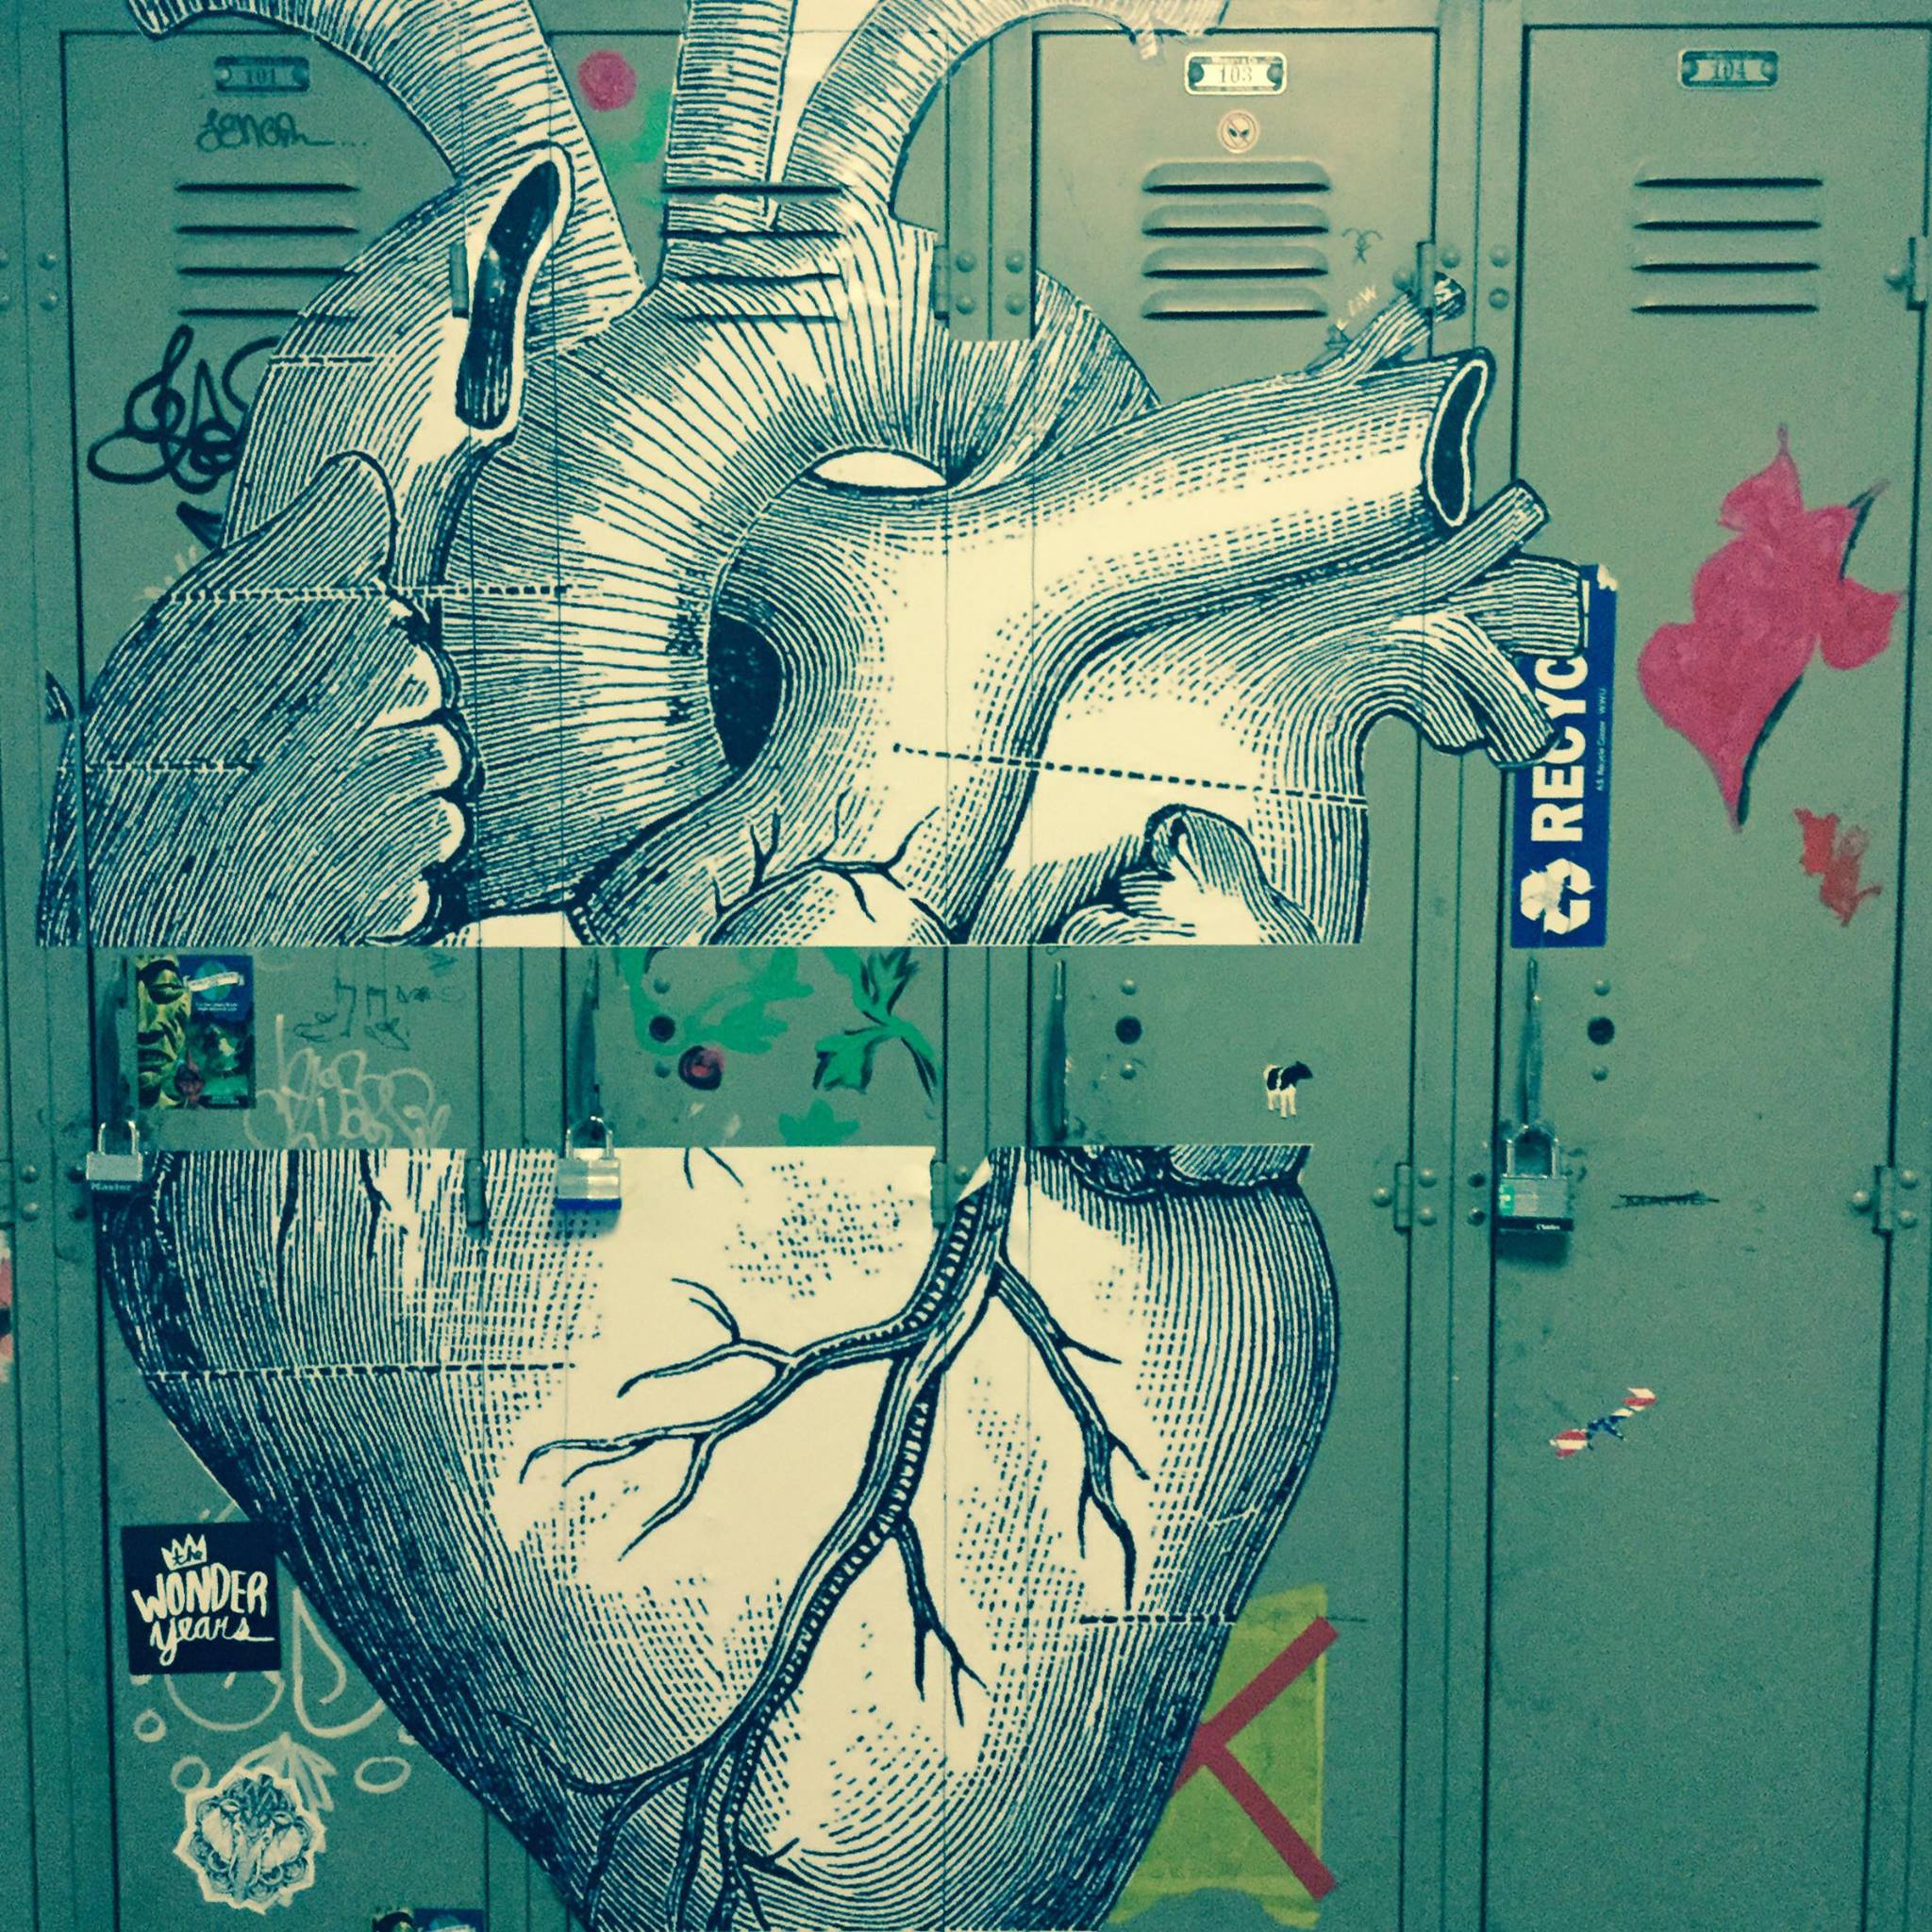 anatomical heart papered onto several lockers